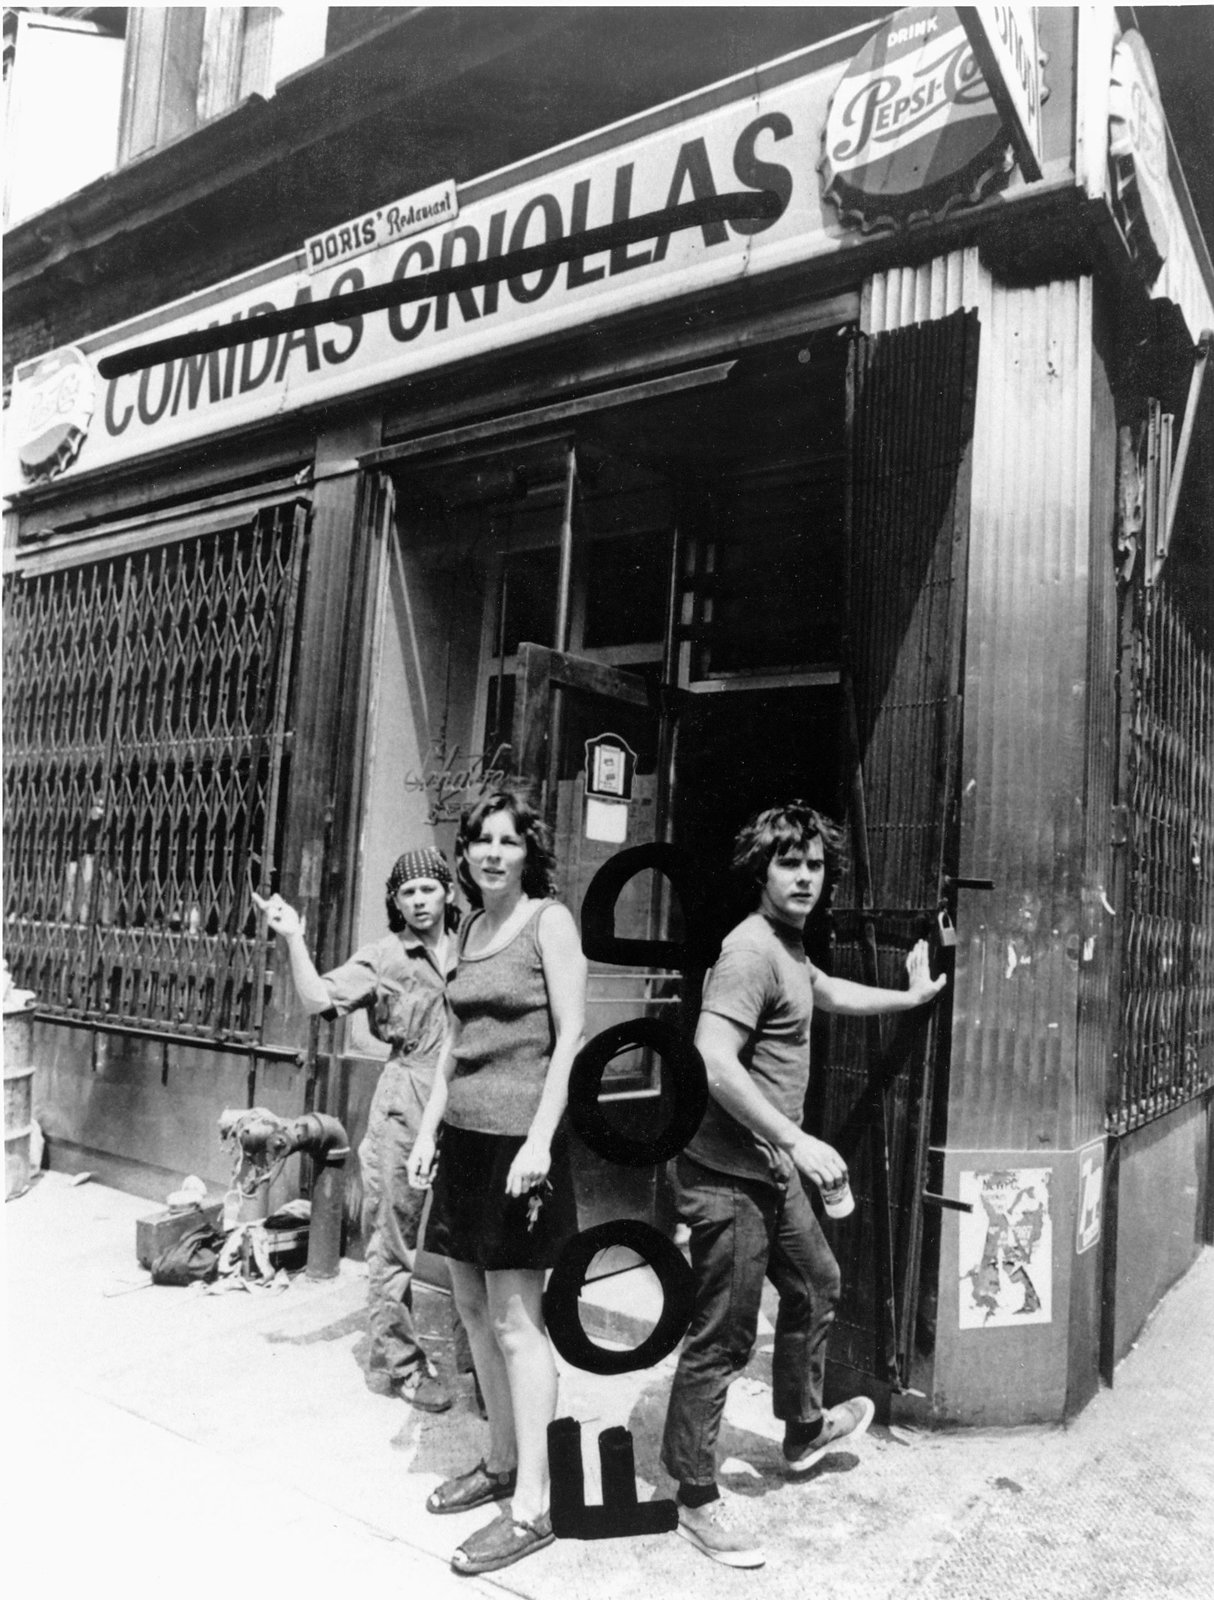 Tina Girouard, Carol Goodden, and Gordon Matta-Clark outside the restaurant FOOD prior to its opening in 1971. Goodden will be one of the artists participating as a chef in the 2013 homage to the original. Photograph by Richard Landry. Courtesy Richard Landry, the Estate of Gordon Matta-Clark and David Zwirner, New York/London.  Photo 4 of 6 in Frieze Art Fair: 7 Things Not to Be Missed